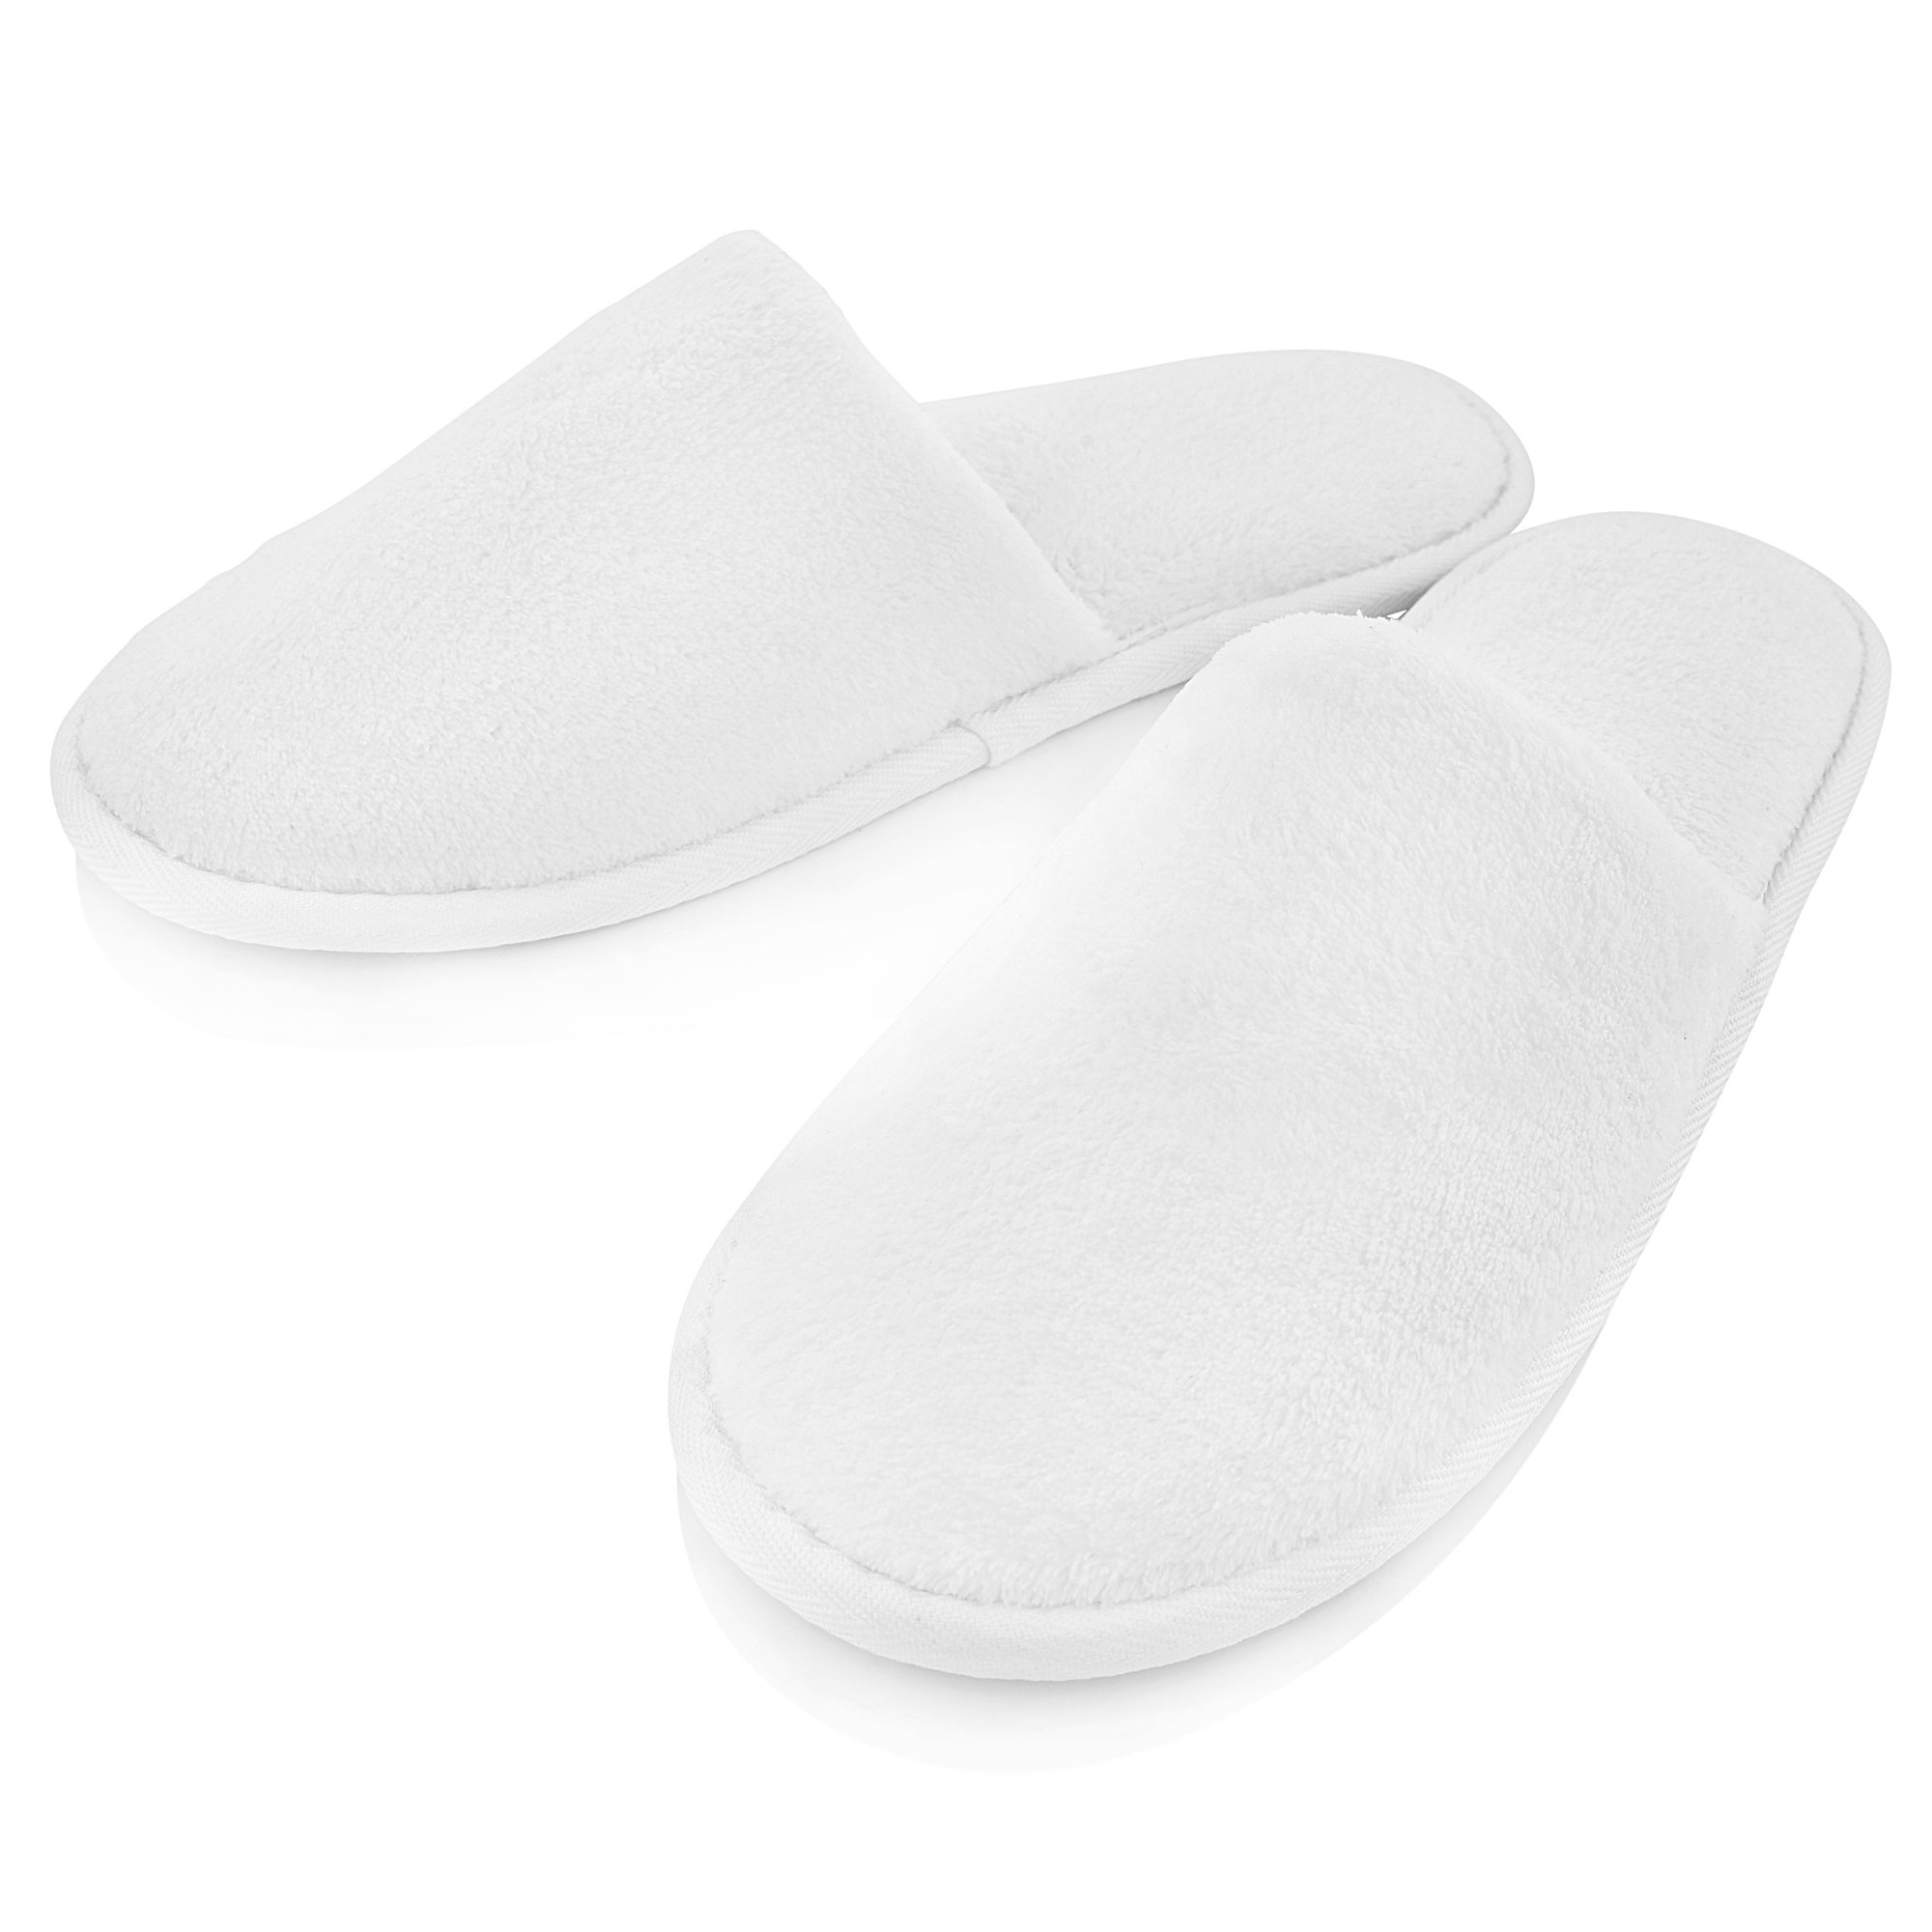 THE RESORT BOUTIQUE White House Slippers (12-Pack) Men and Women | Luxury, Spa-Quality House Shoes | Home, Travel, Gym | Non-Slip Sole, Soft Cushioned Padding | Small & Large Set by THE RESORT BOUTIQUE (Image #2)